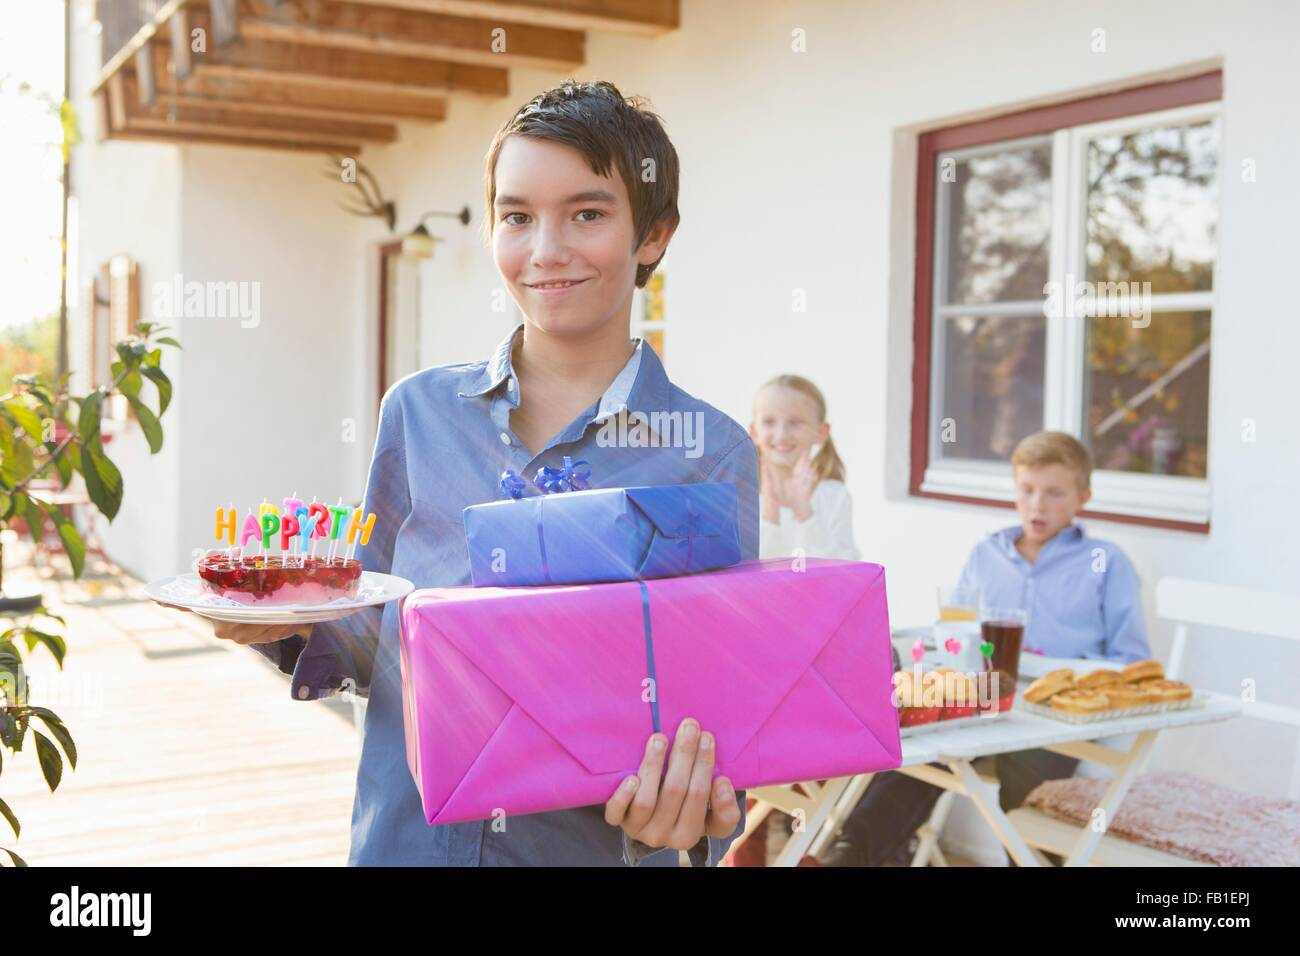 Portrait Of Teenage Boy Carrying Birthday Cake And Gifts On Patio